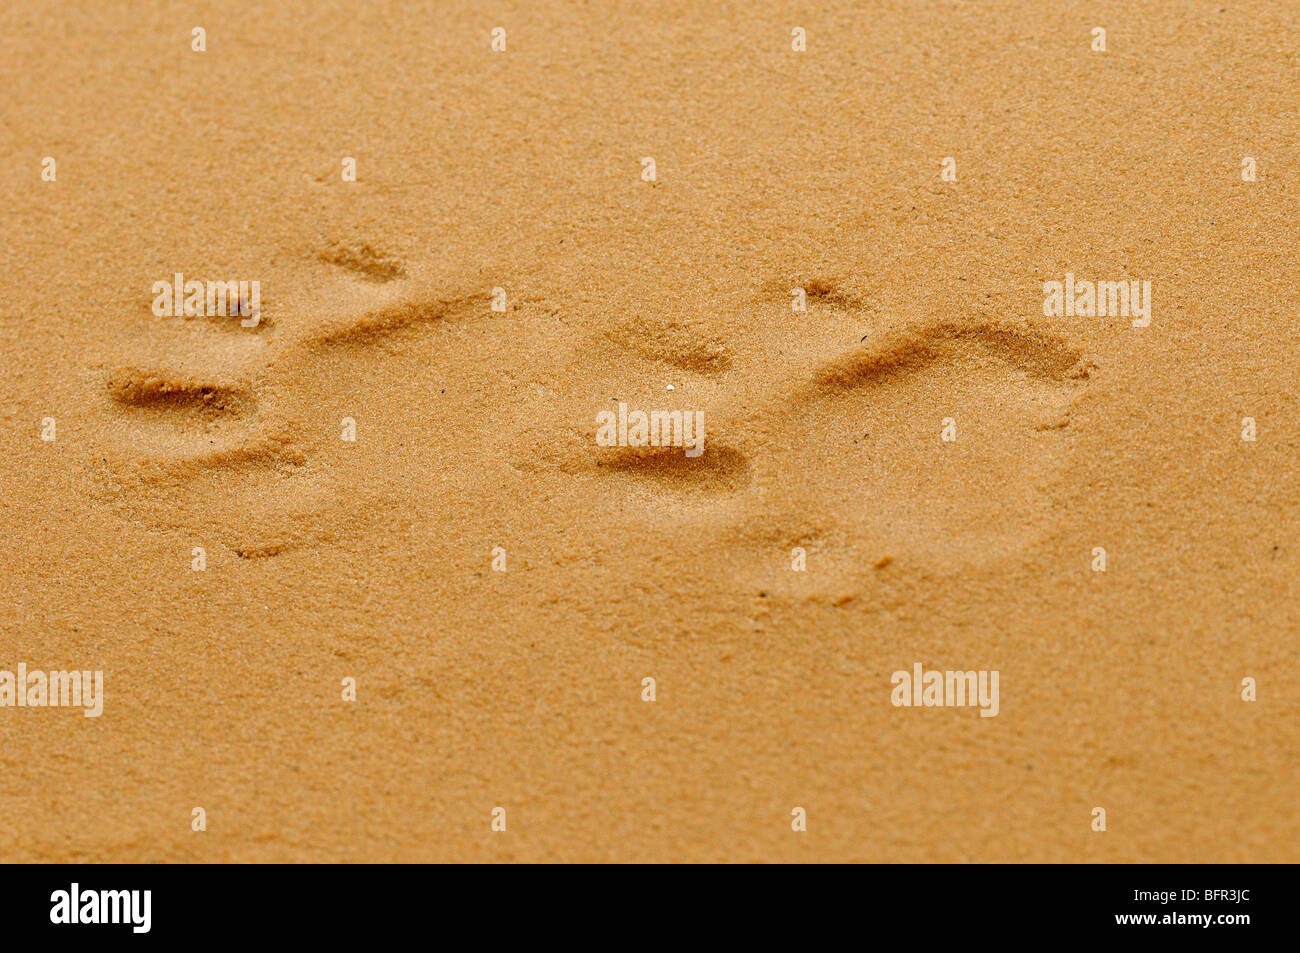 Jaguar (Panthera onca) footprints in sand, Pantanal, Brazil. - Stock Image